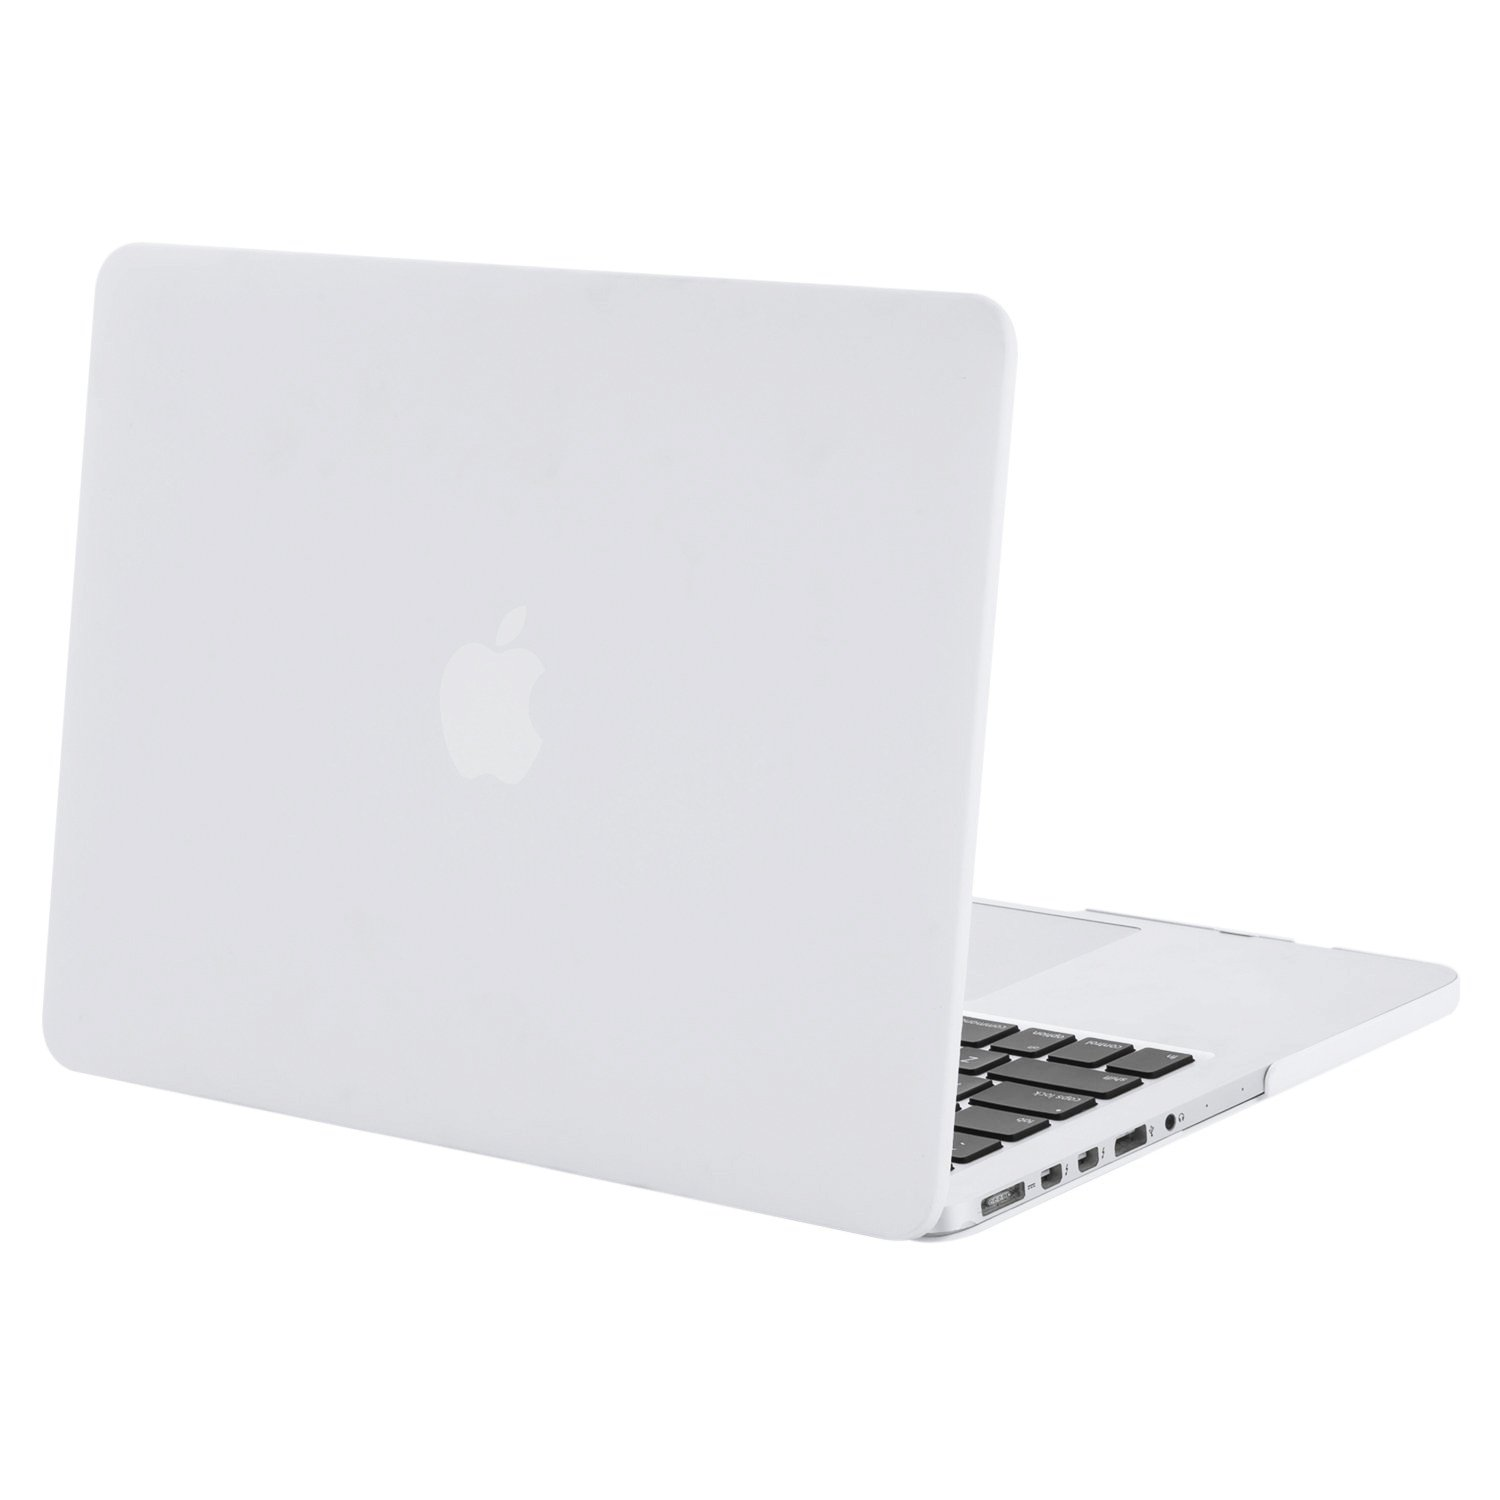 MOSISO Plastic Hard Shell Case Cover Only Compatible MacBook Pro (No USB-C) 13 Inch with Retina Display (No CD-ROM) (A1502 / A1425), Release 2015/2014/2013/end 2012, White